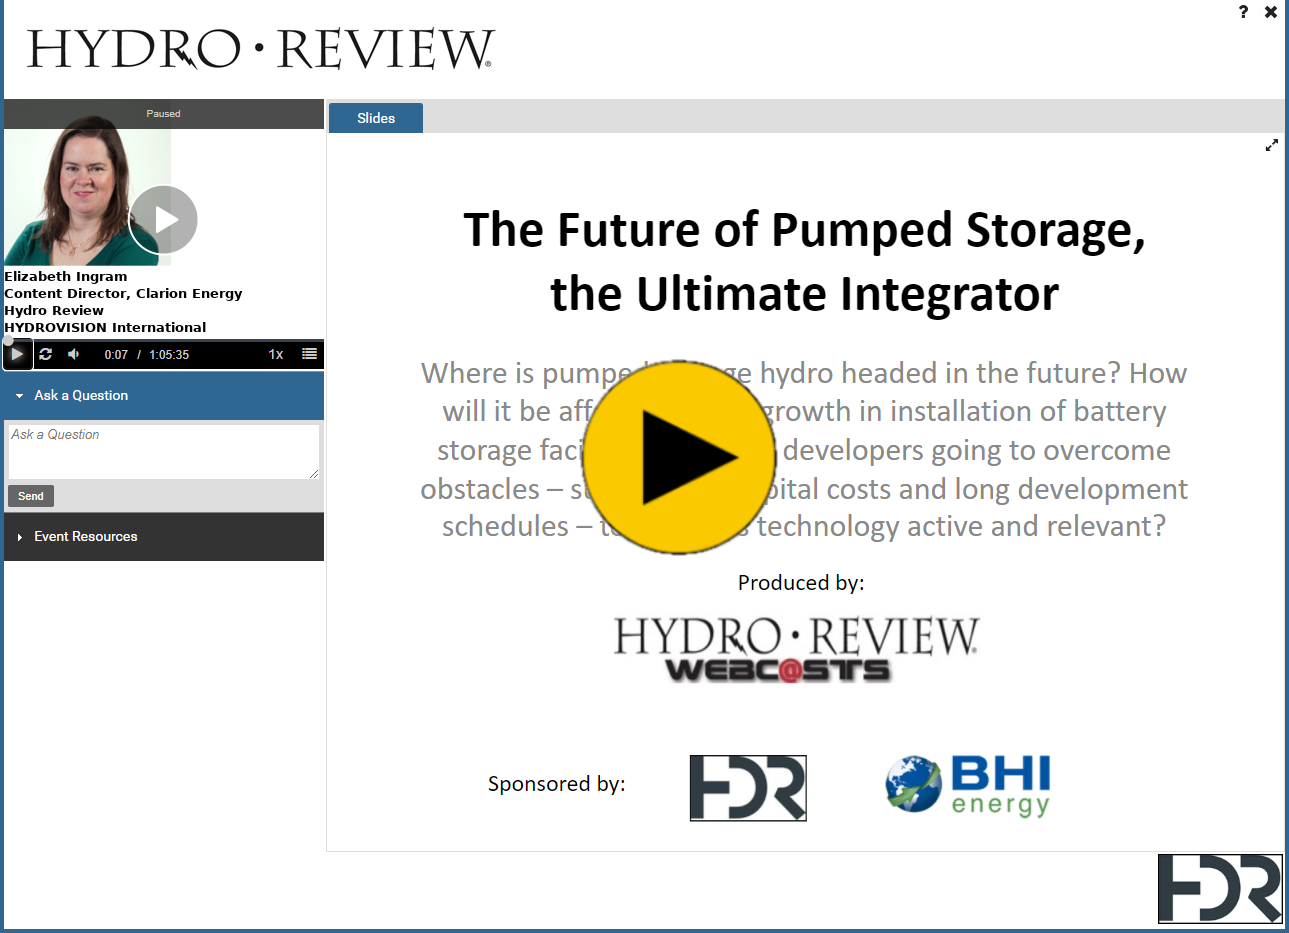 The Future of Pumped Storage